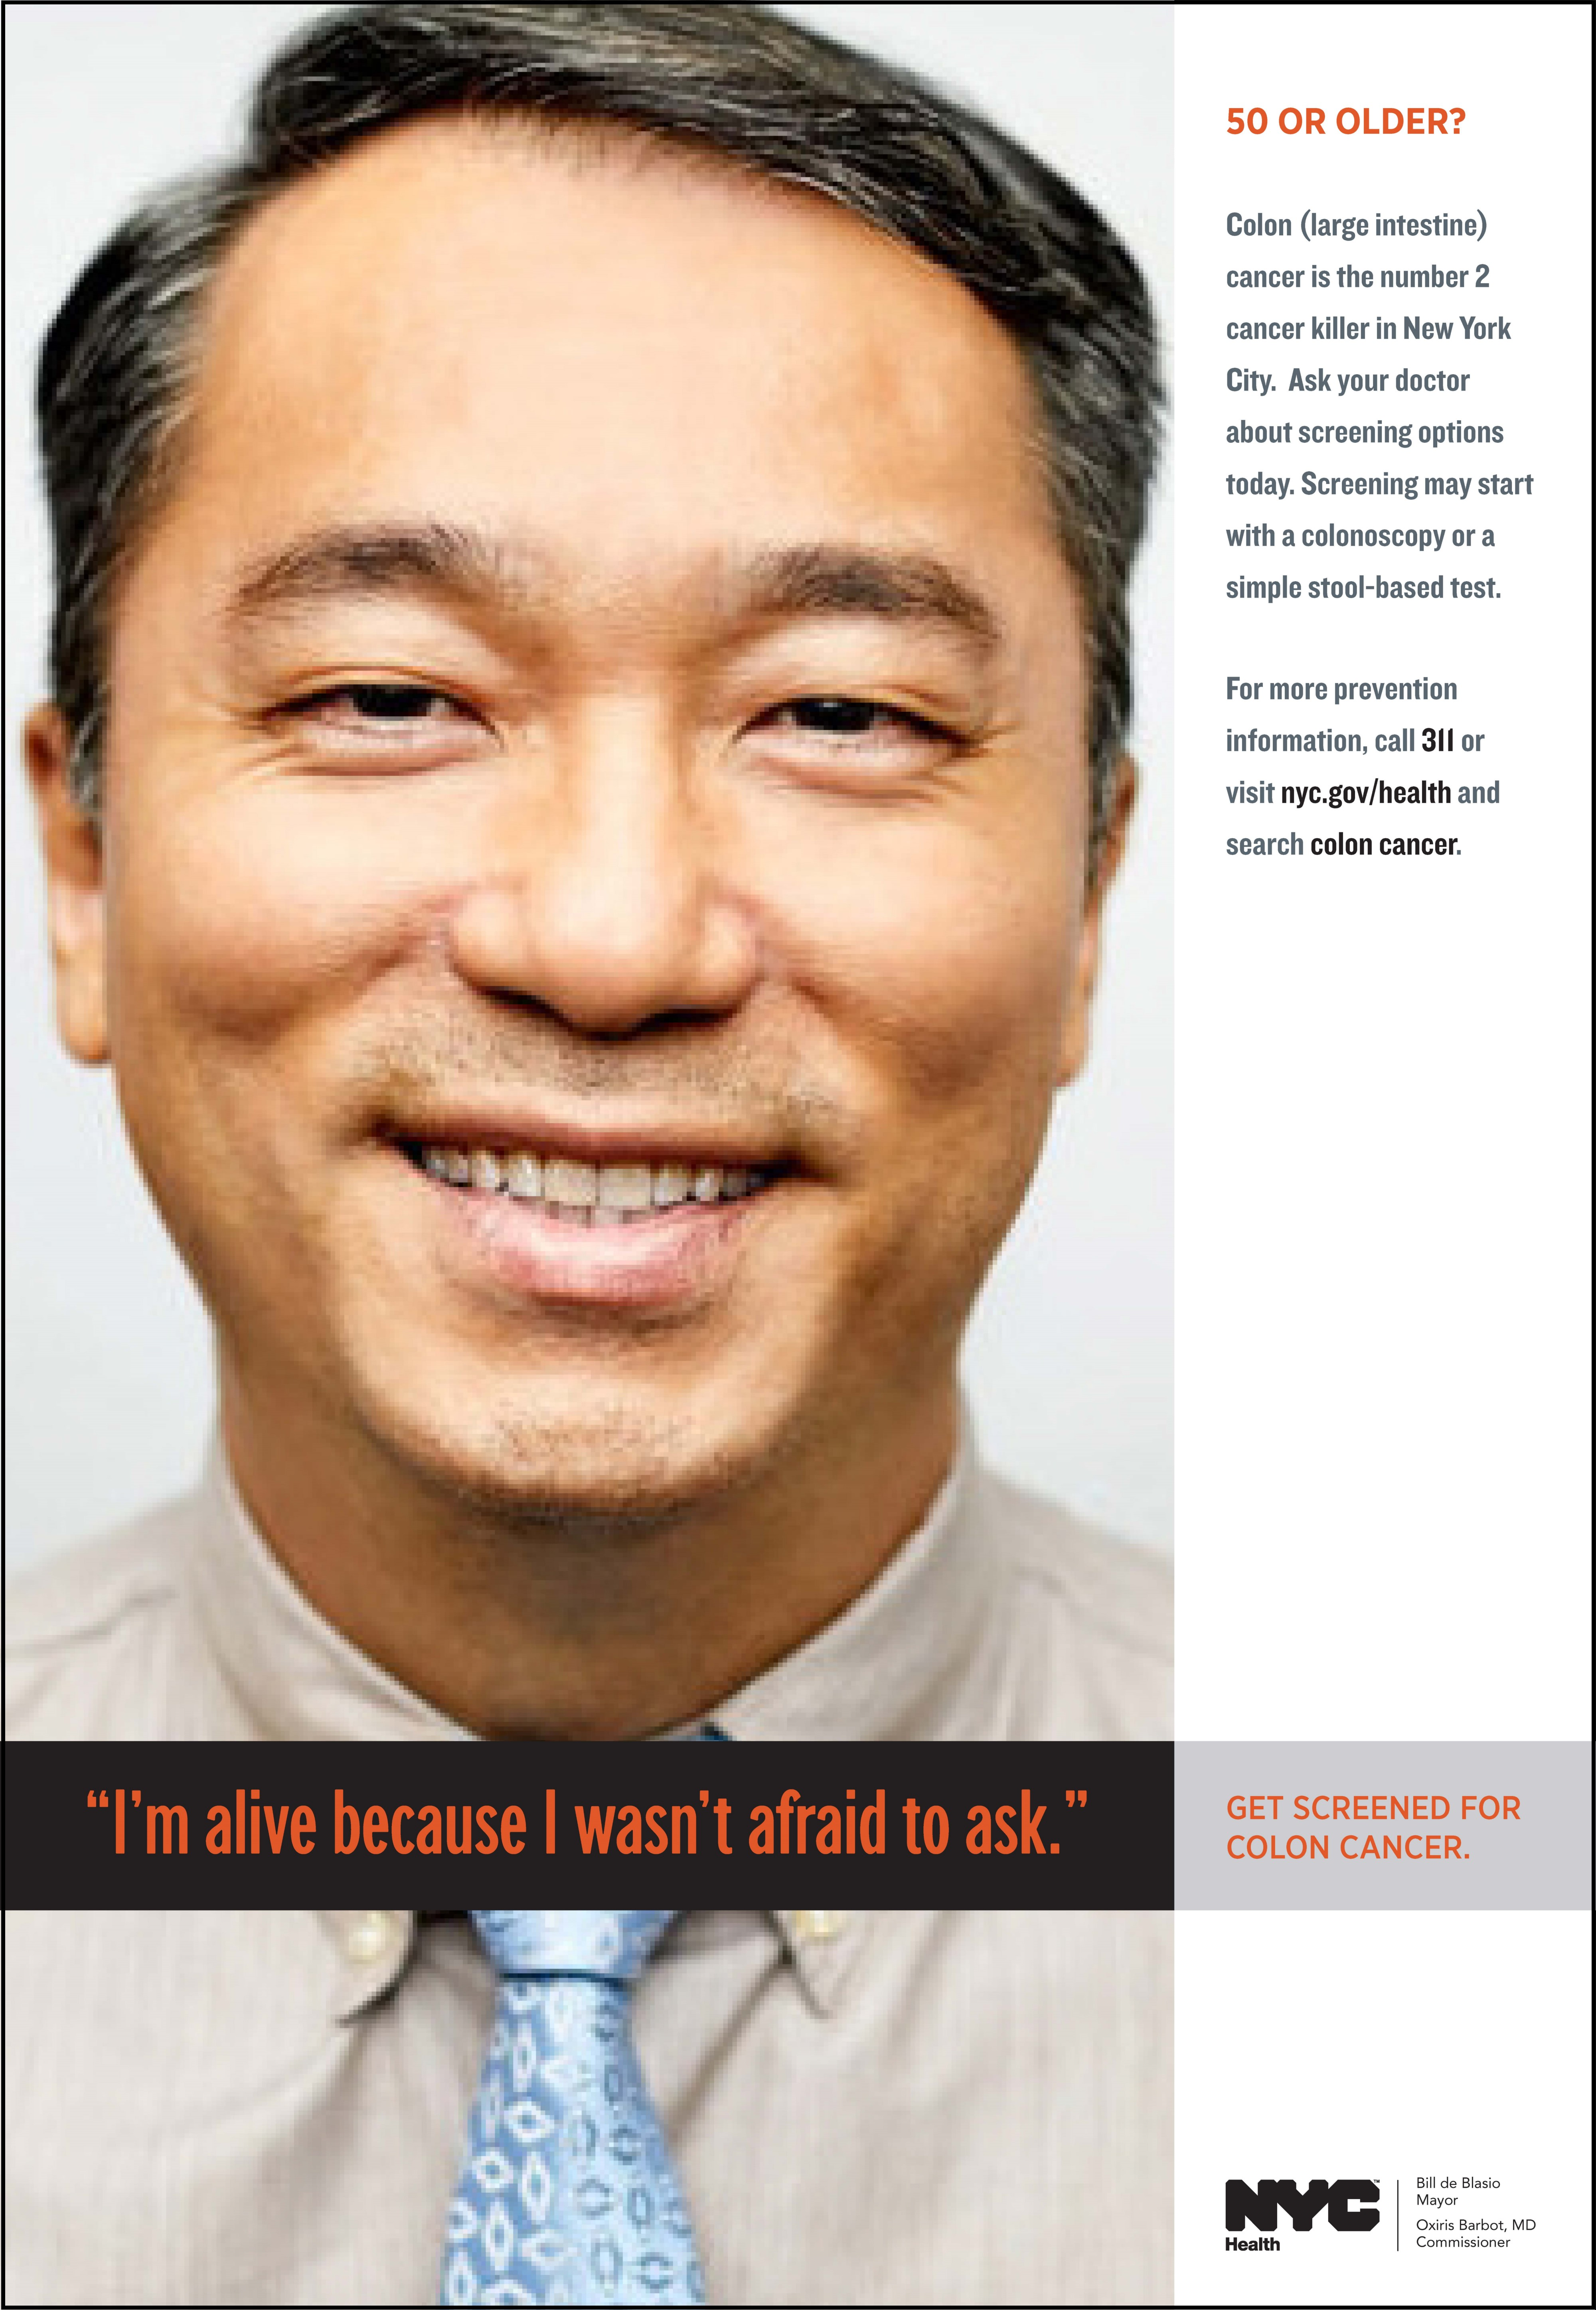 Asian Americans Should Get Screened For Colon Cancer